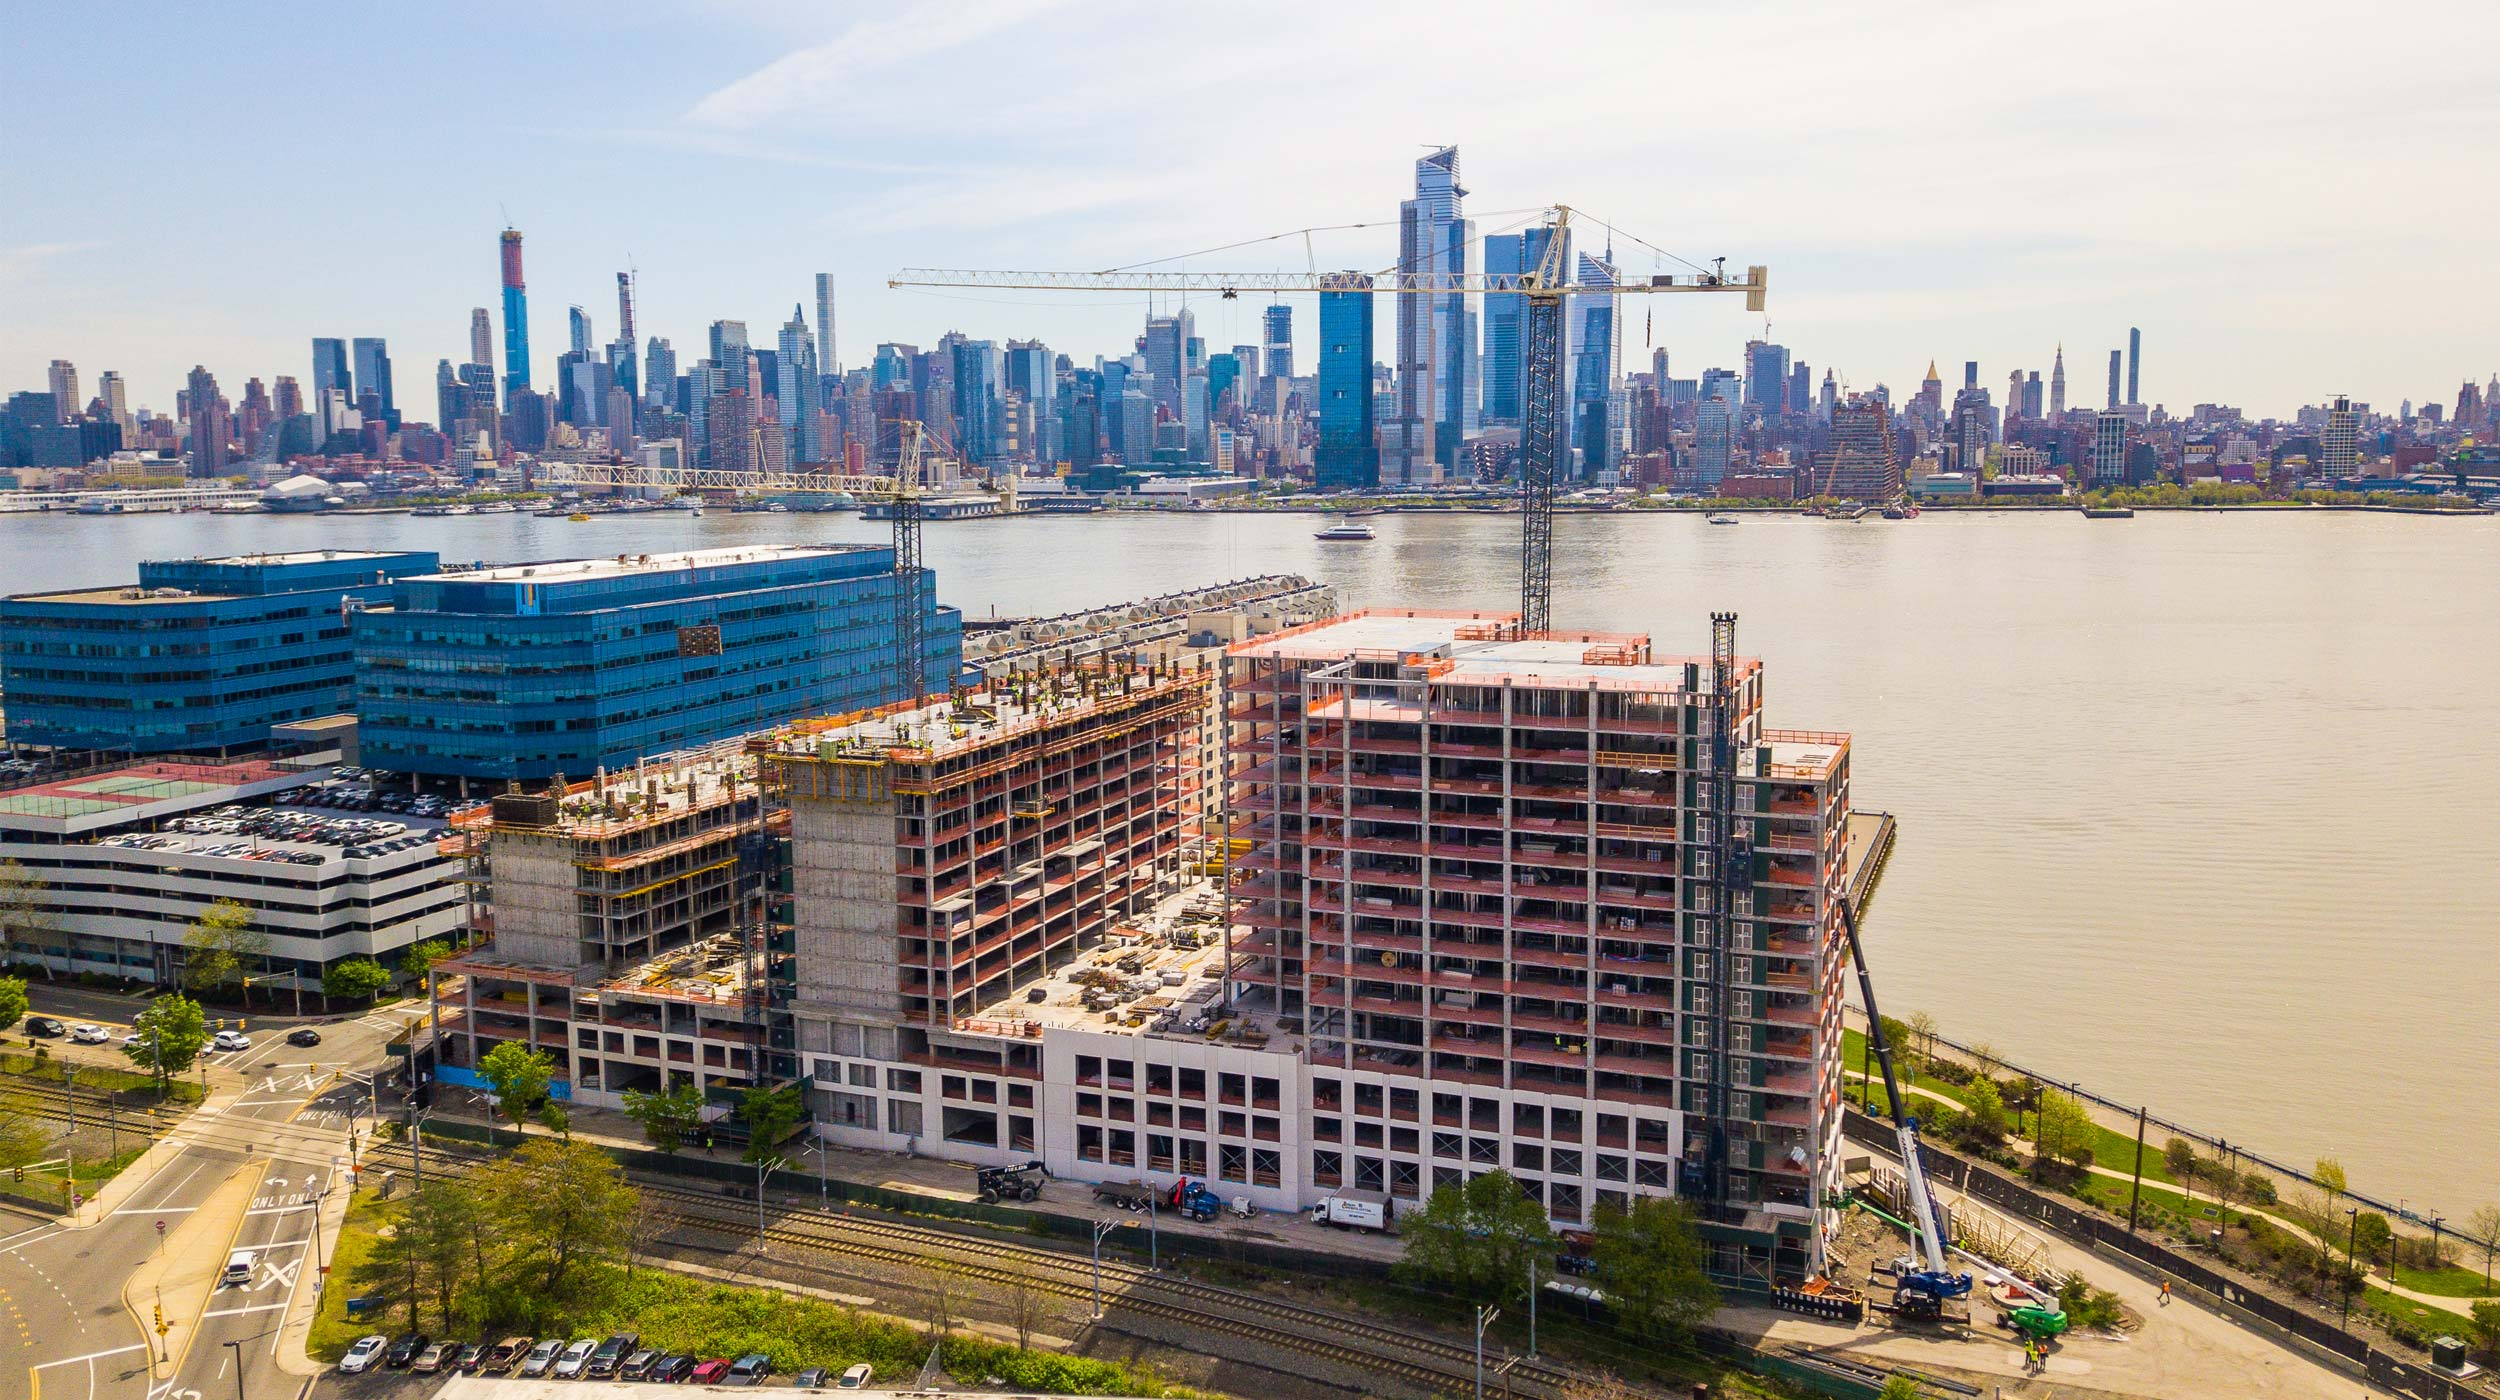 This building project of three towers of 15-stories will host 573 apartments and 719 parking spaces, covering a space of 275.108 m² that includes 15.850 m² of amenity space.